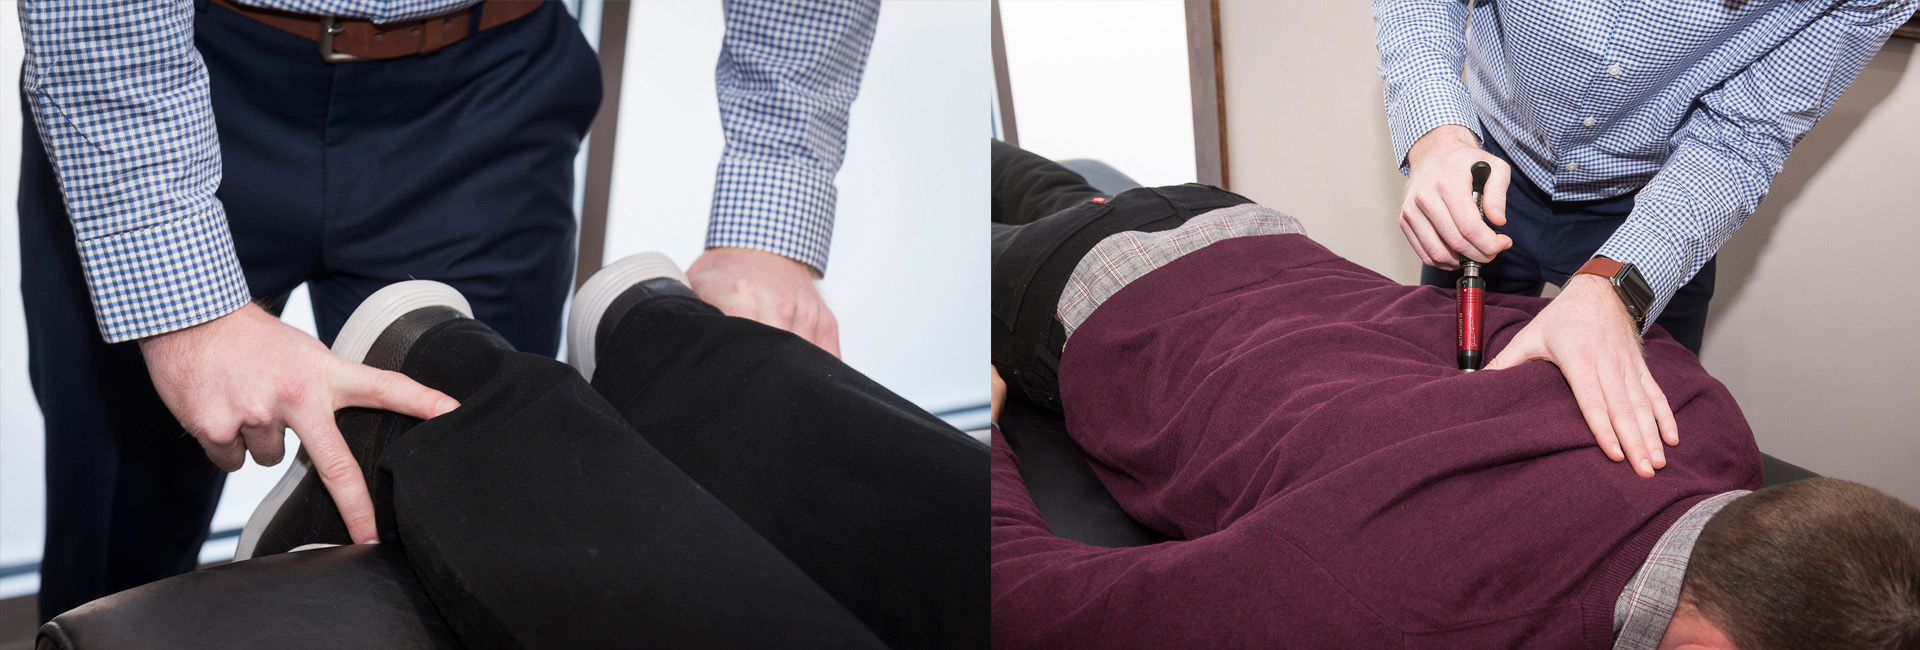 the Activator method at Thrive Family Chiropractic in Urbandale